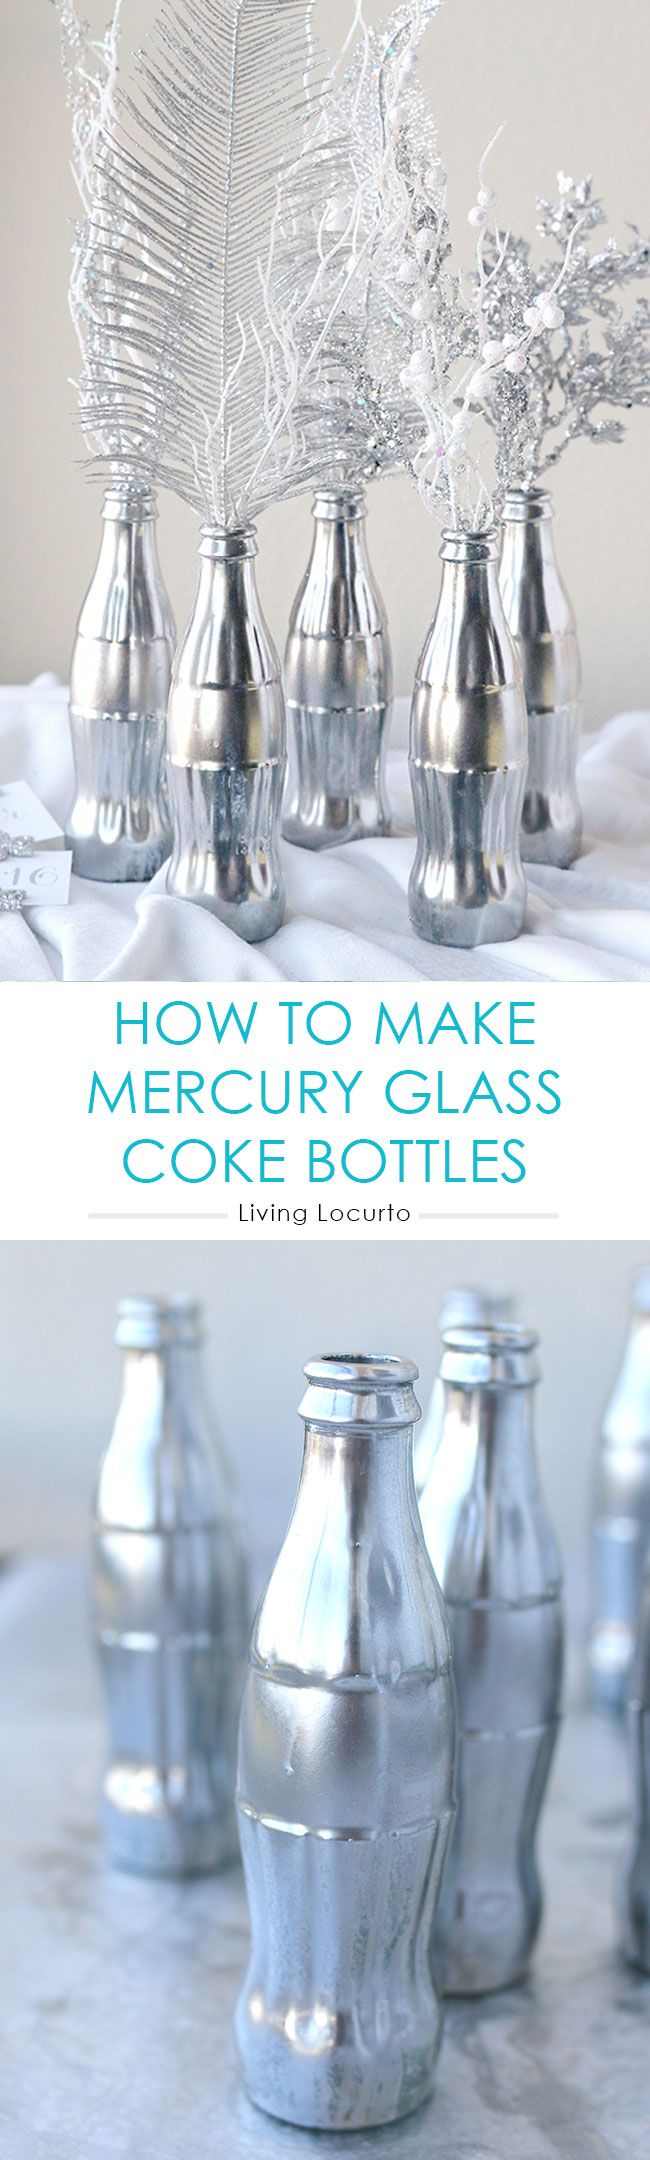 How to Make a Mercury Glass Coke Bottles. Easy DIY Craft Idea for Coca-Cola bottles. These would be great as a holiday centerpiece in your home! #iworkwithcoke ad